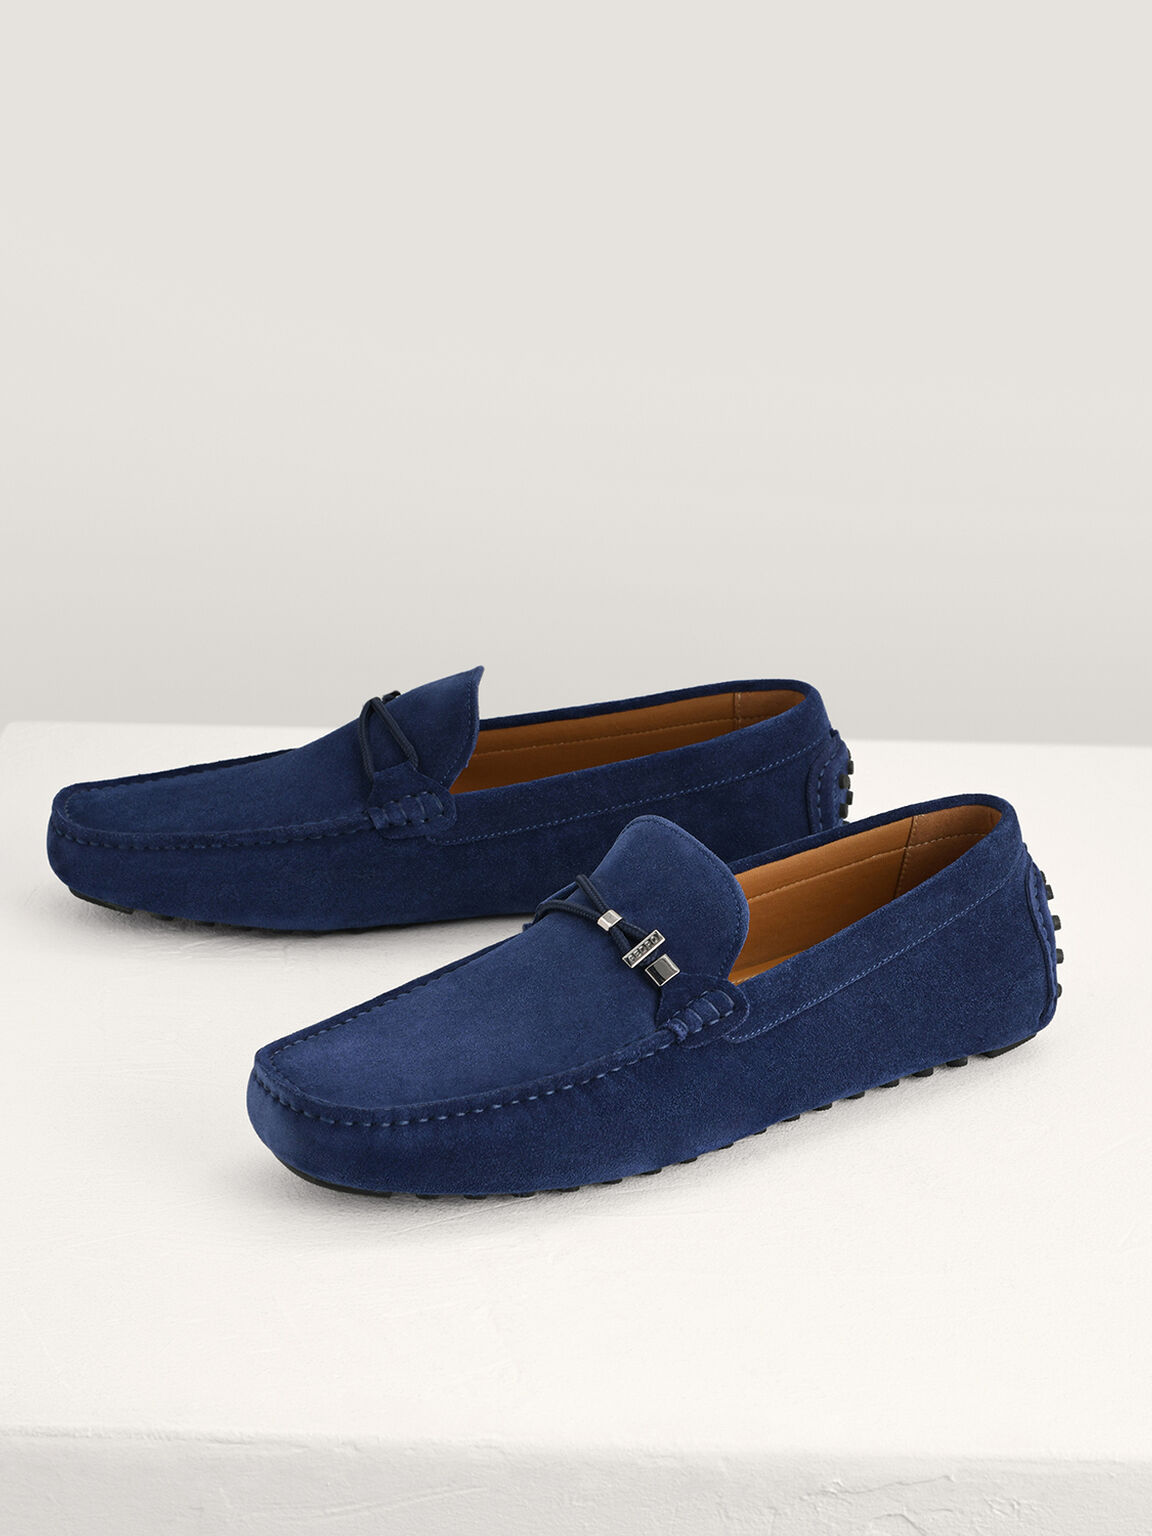 Suede Moccasins with Rope Detailing, Navy, hi-res